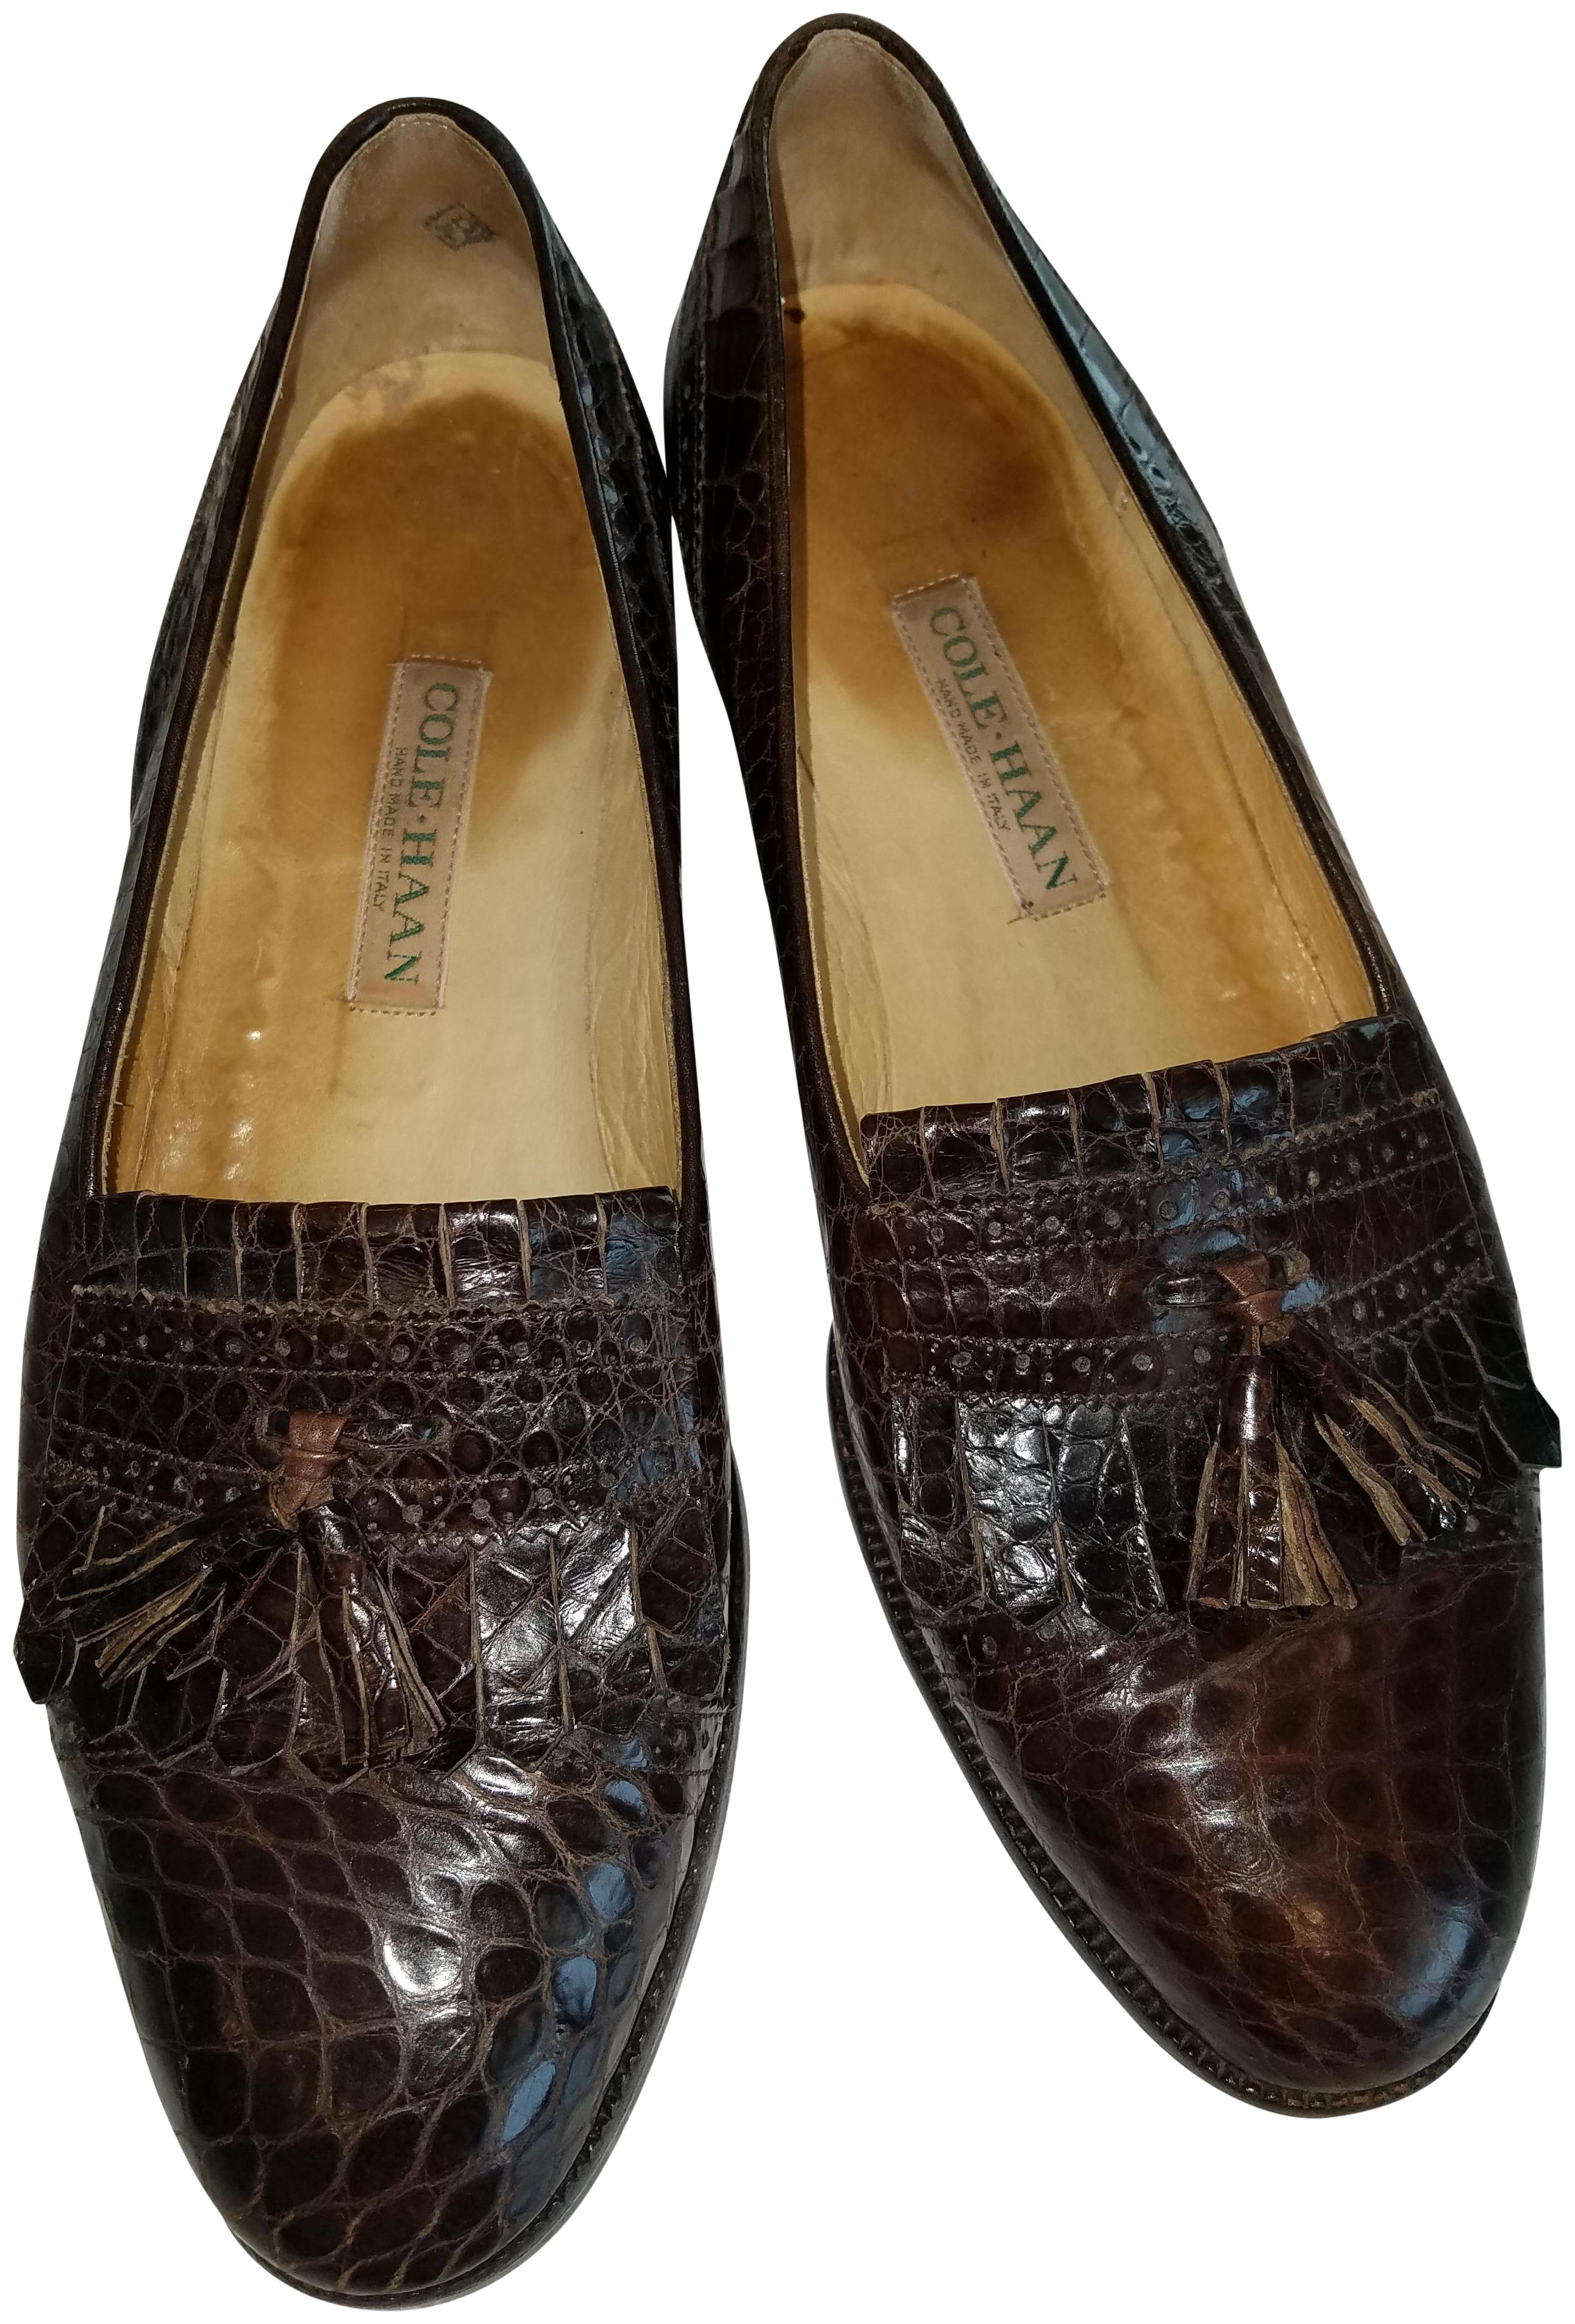 Cole Haan Brown Alligator Genuine with Kiltie and Tassel Flats Size US 9.5 Regular (M, B)